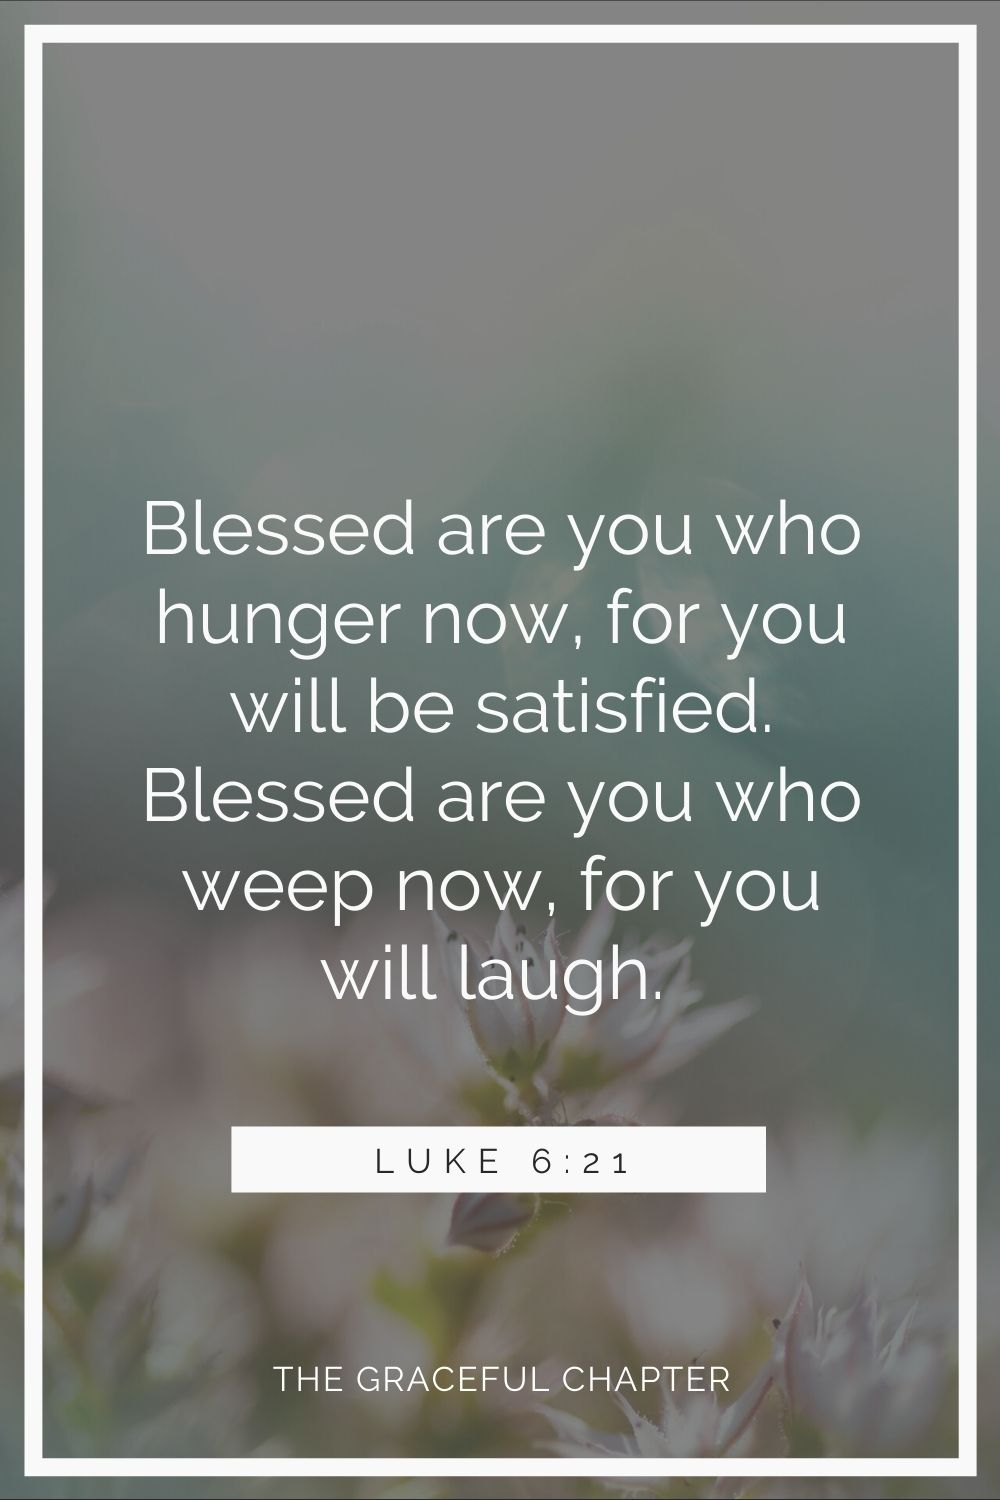 Blessed are you who hunger now, for you will be satisfied. Blessed are you who weep now, for you will laugh. Luke 6:21